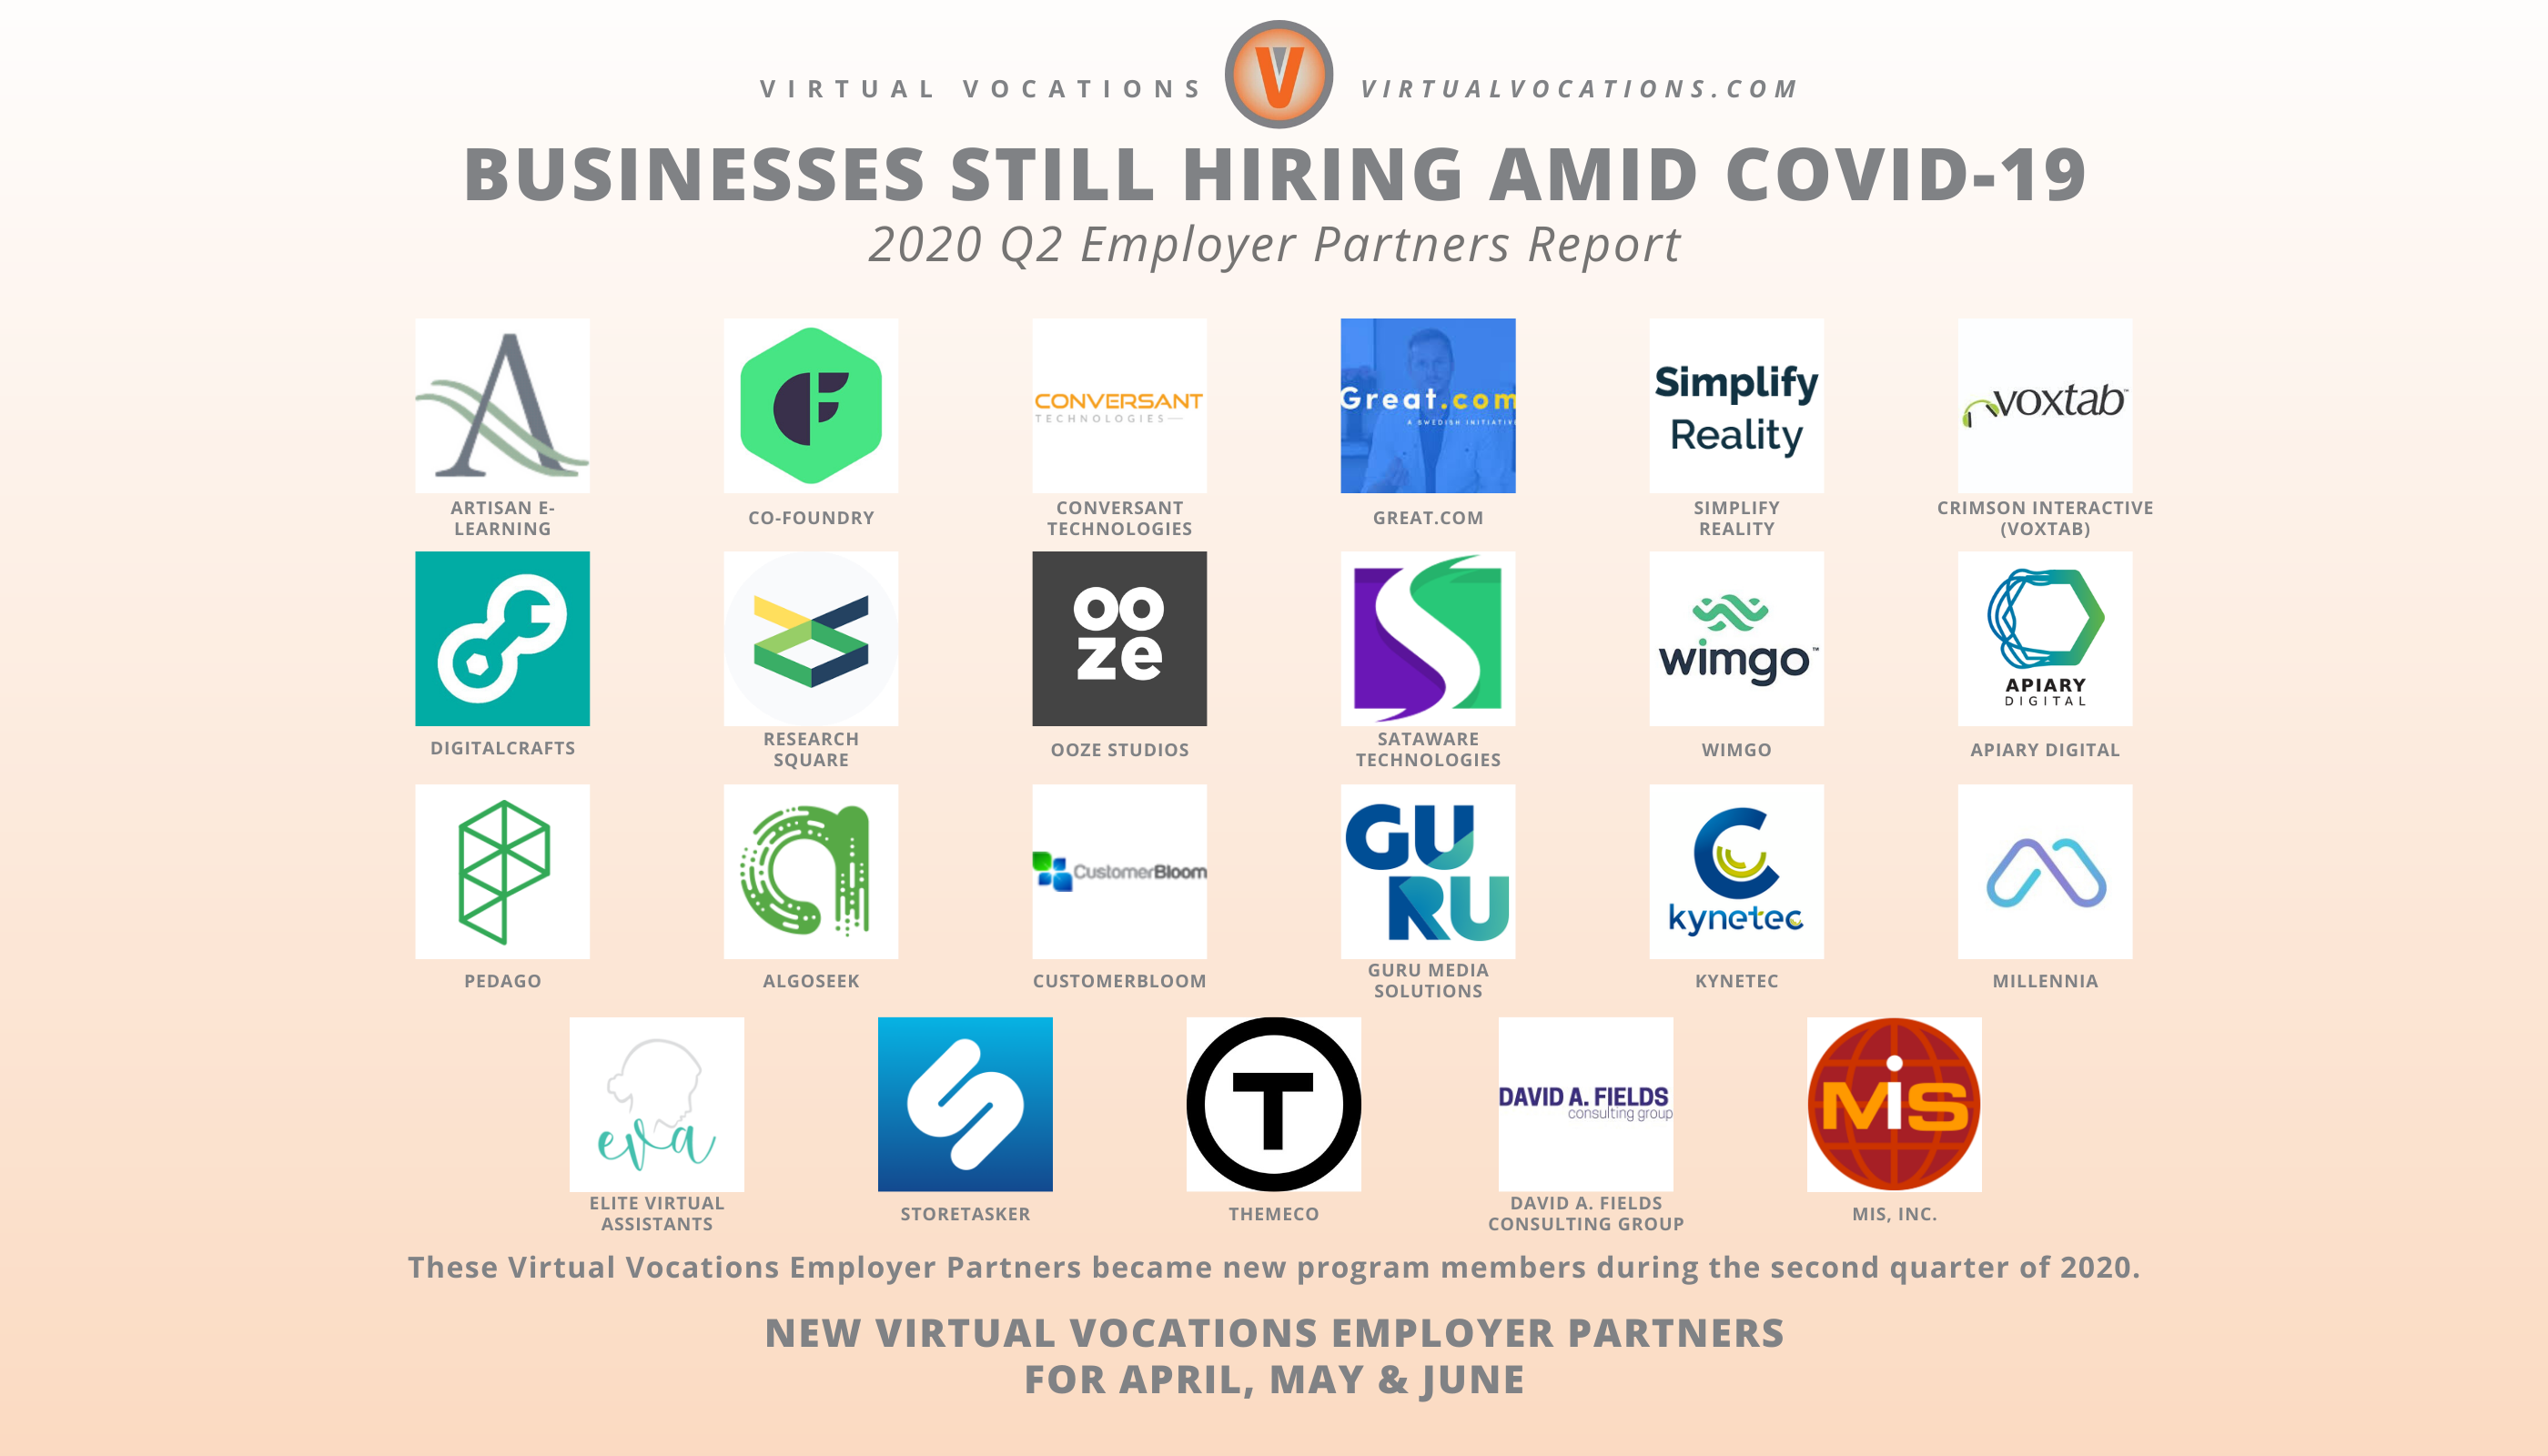 Virtual Vocations Businesses Still Hiring Amid COVID-19 - Q2 Employer Partners Report - New Employer Partners